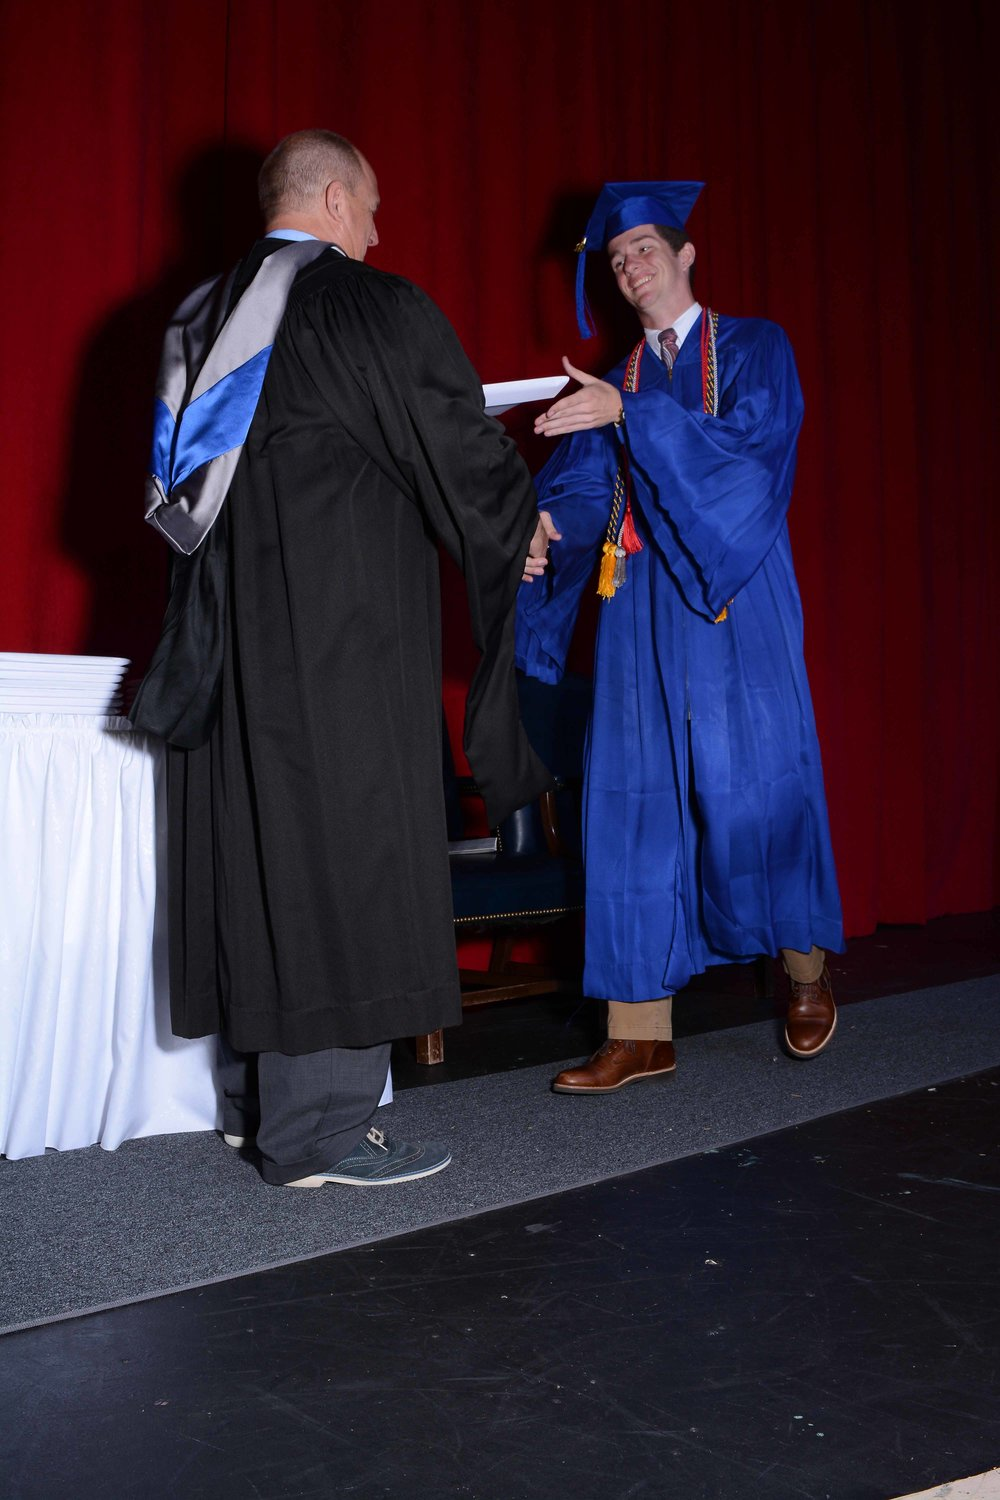 May14 Commencement128.jpg